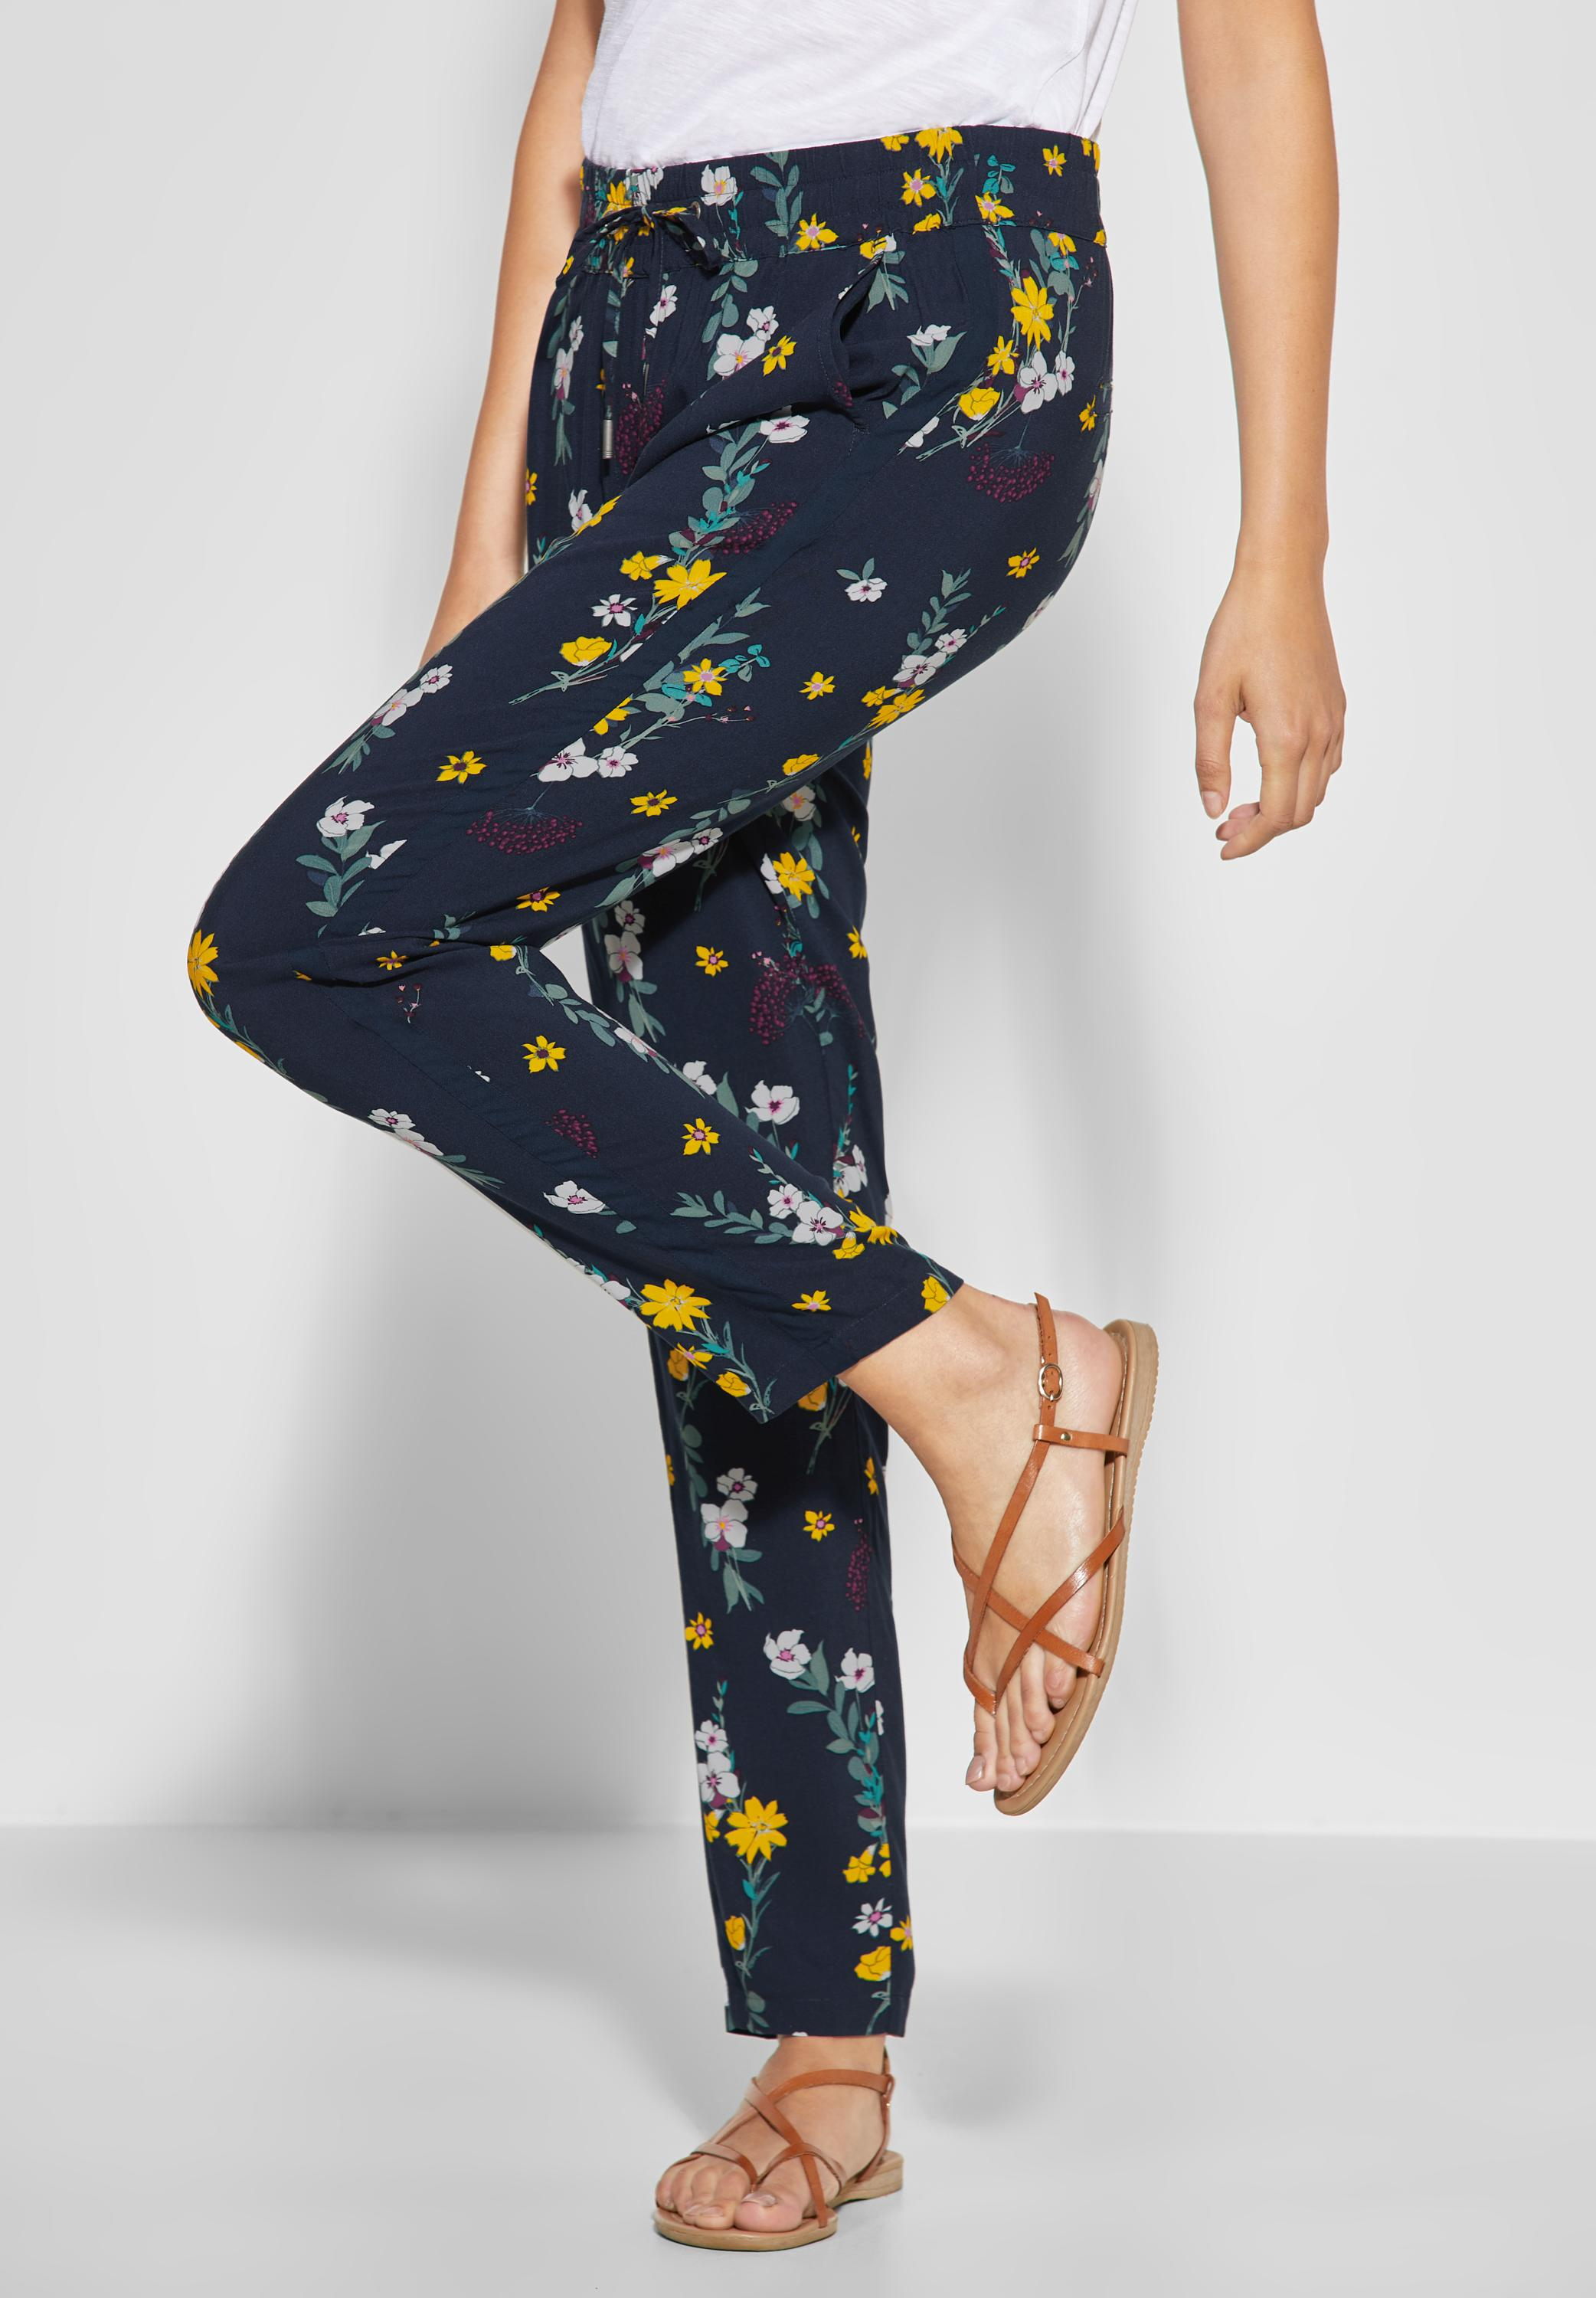 CECIL Flower Print Hose Chelsea in Deep Blue